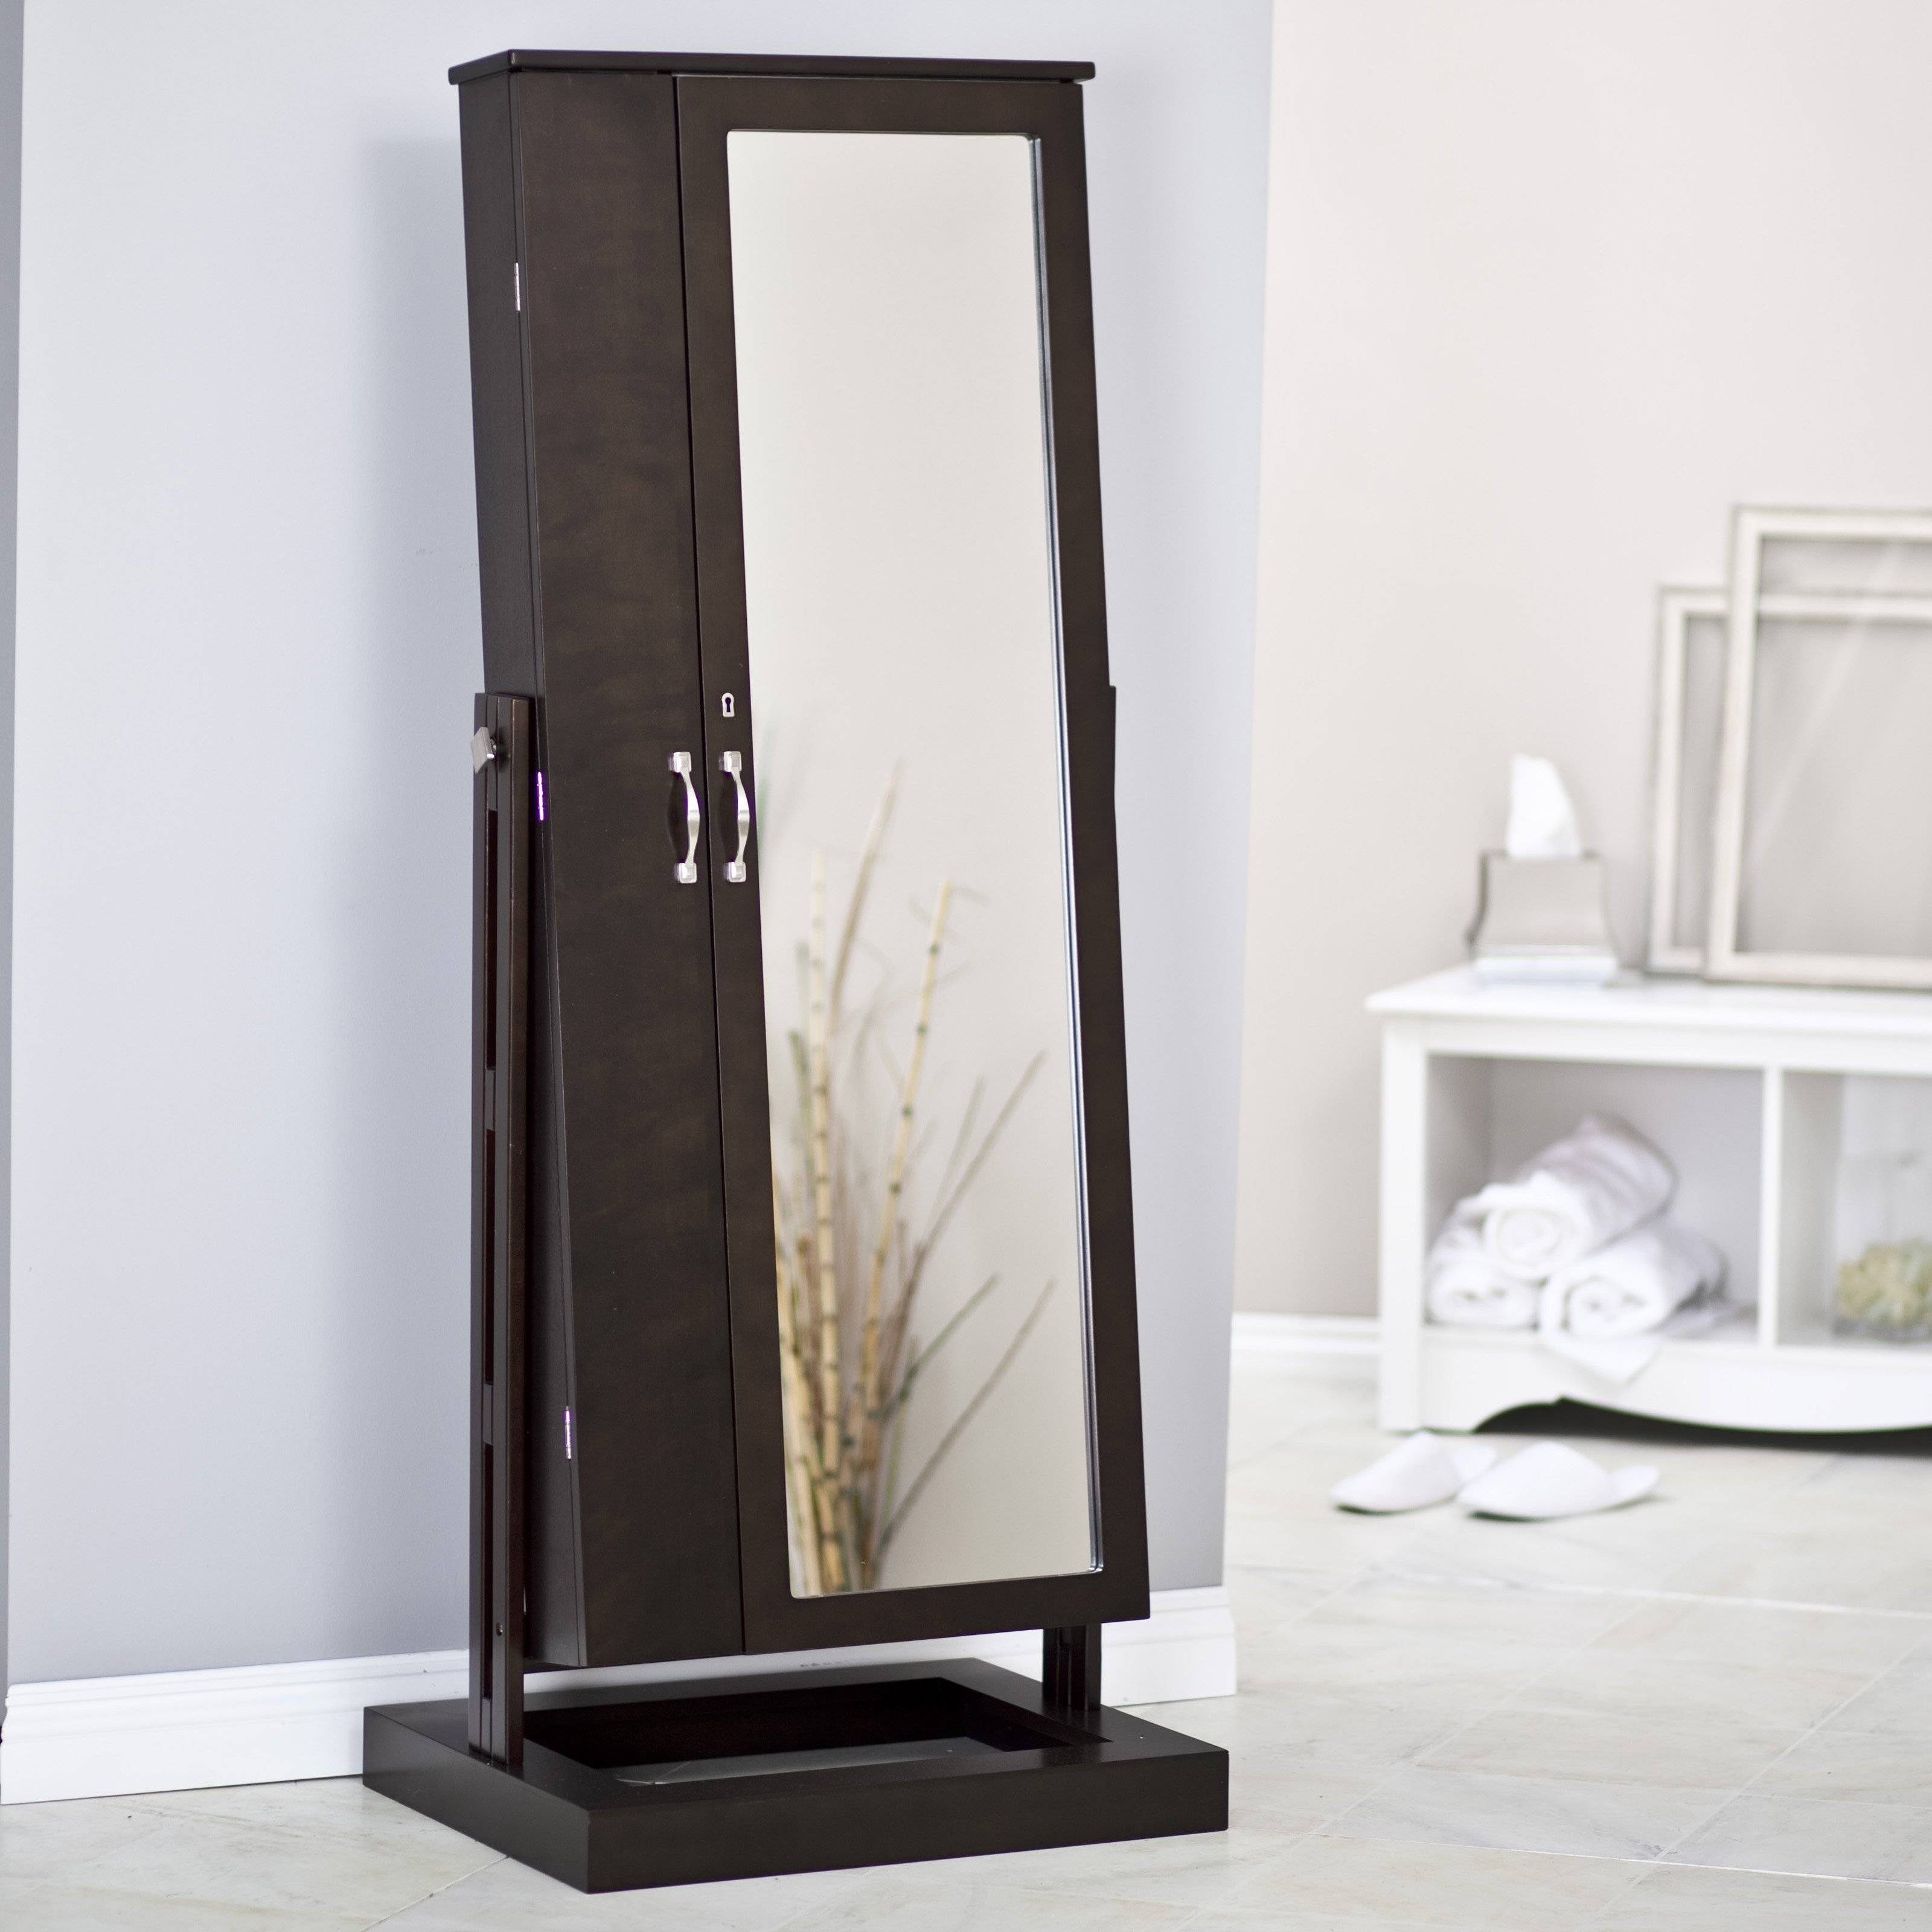 Floor Standing Mirror Jewellery Cabinet – Home Design Ideas And For Modern Cheval Mirrors (View 6 of 25)